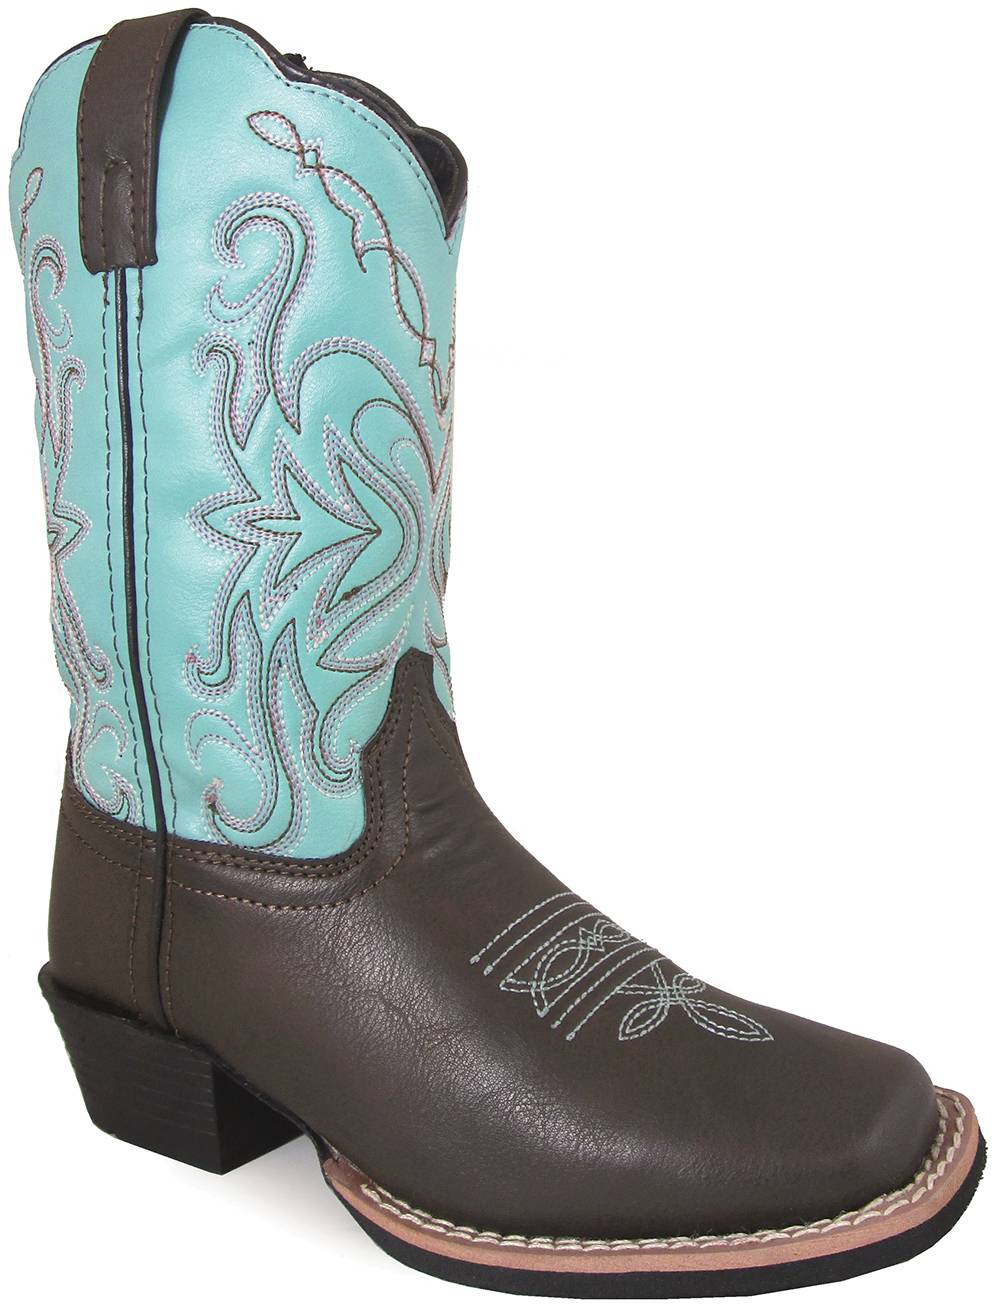 Smoky Mountain Del Ray Square Toe Boots - Youth - Brown/Turquoise